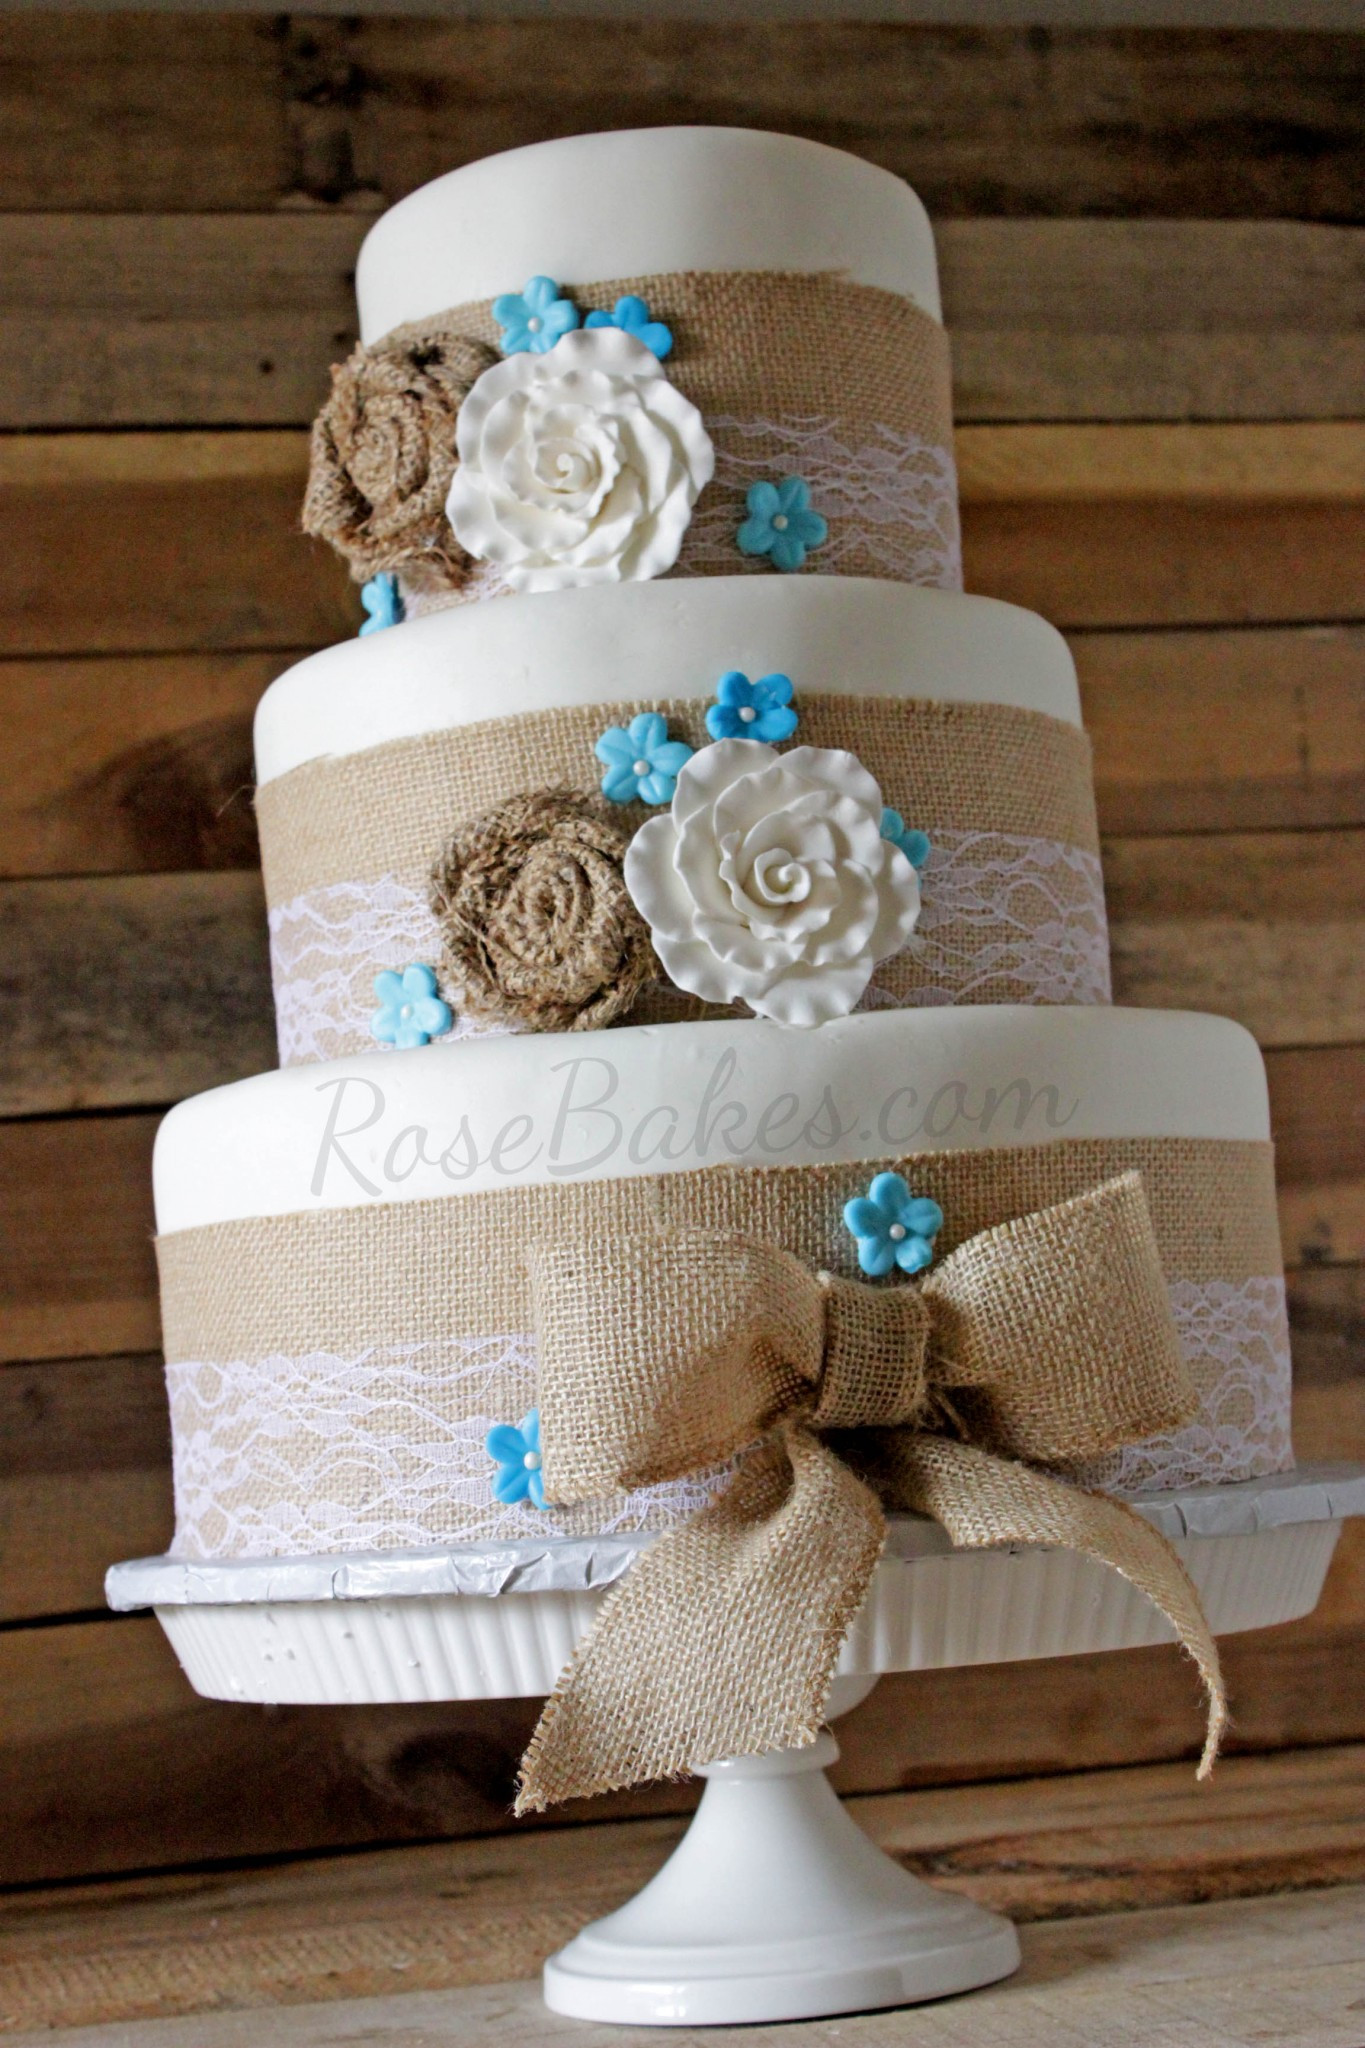 Wedding Cakes Rustic  Burlap & Lace Rustic Wedding Cake Rose Bakes